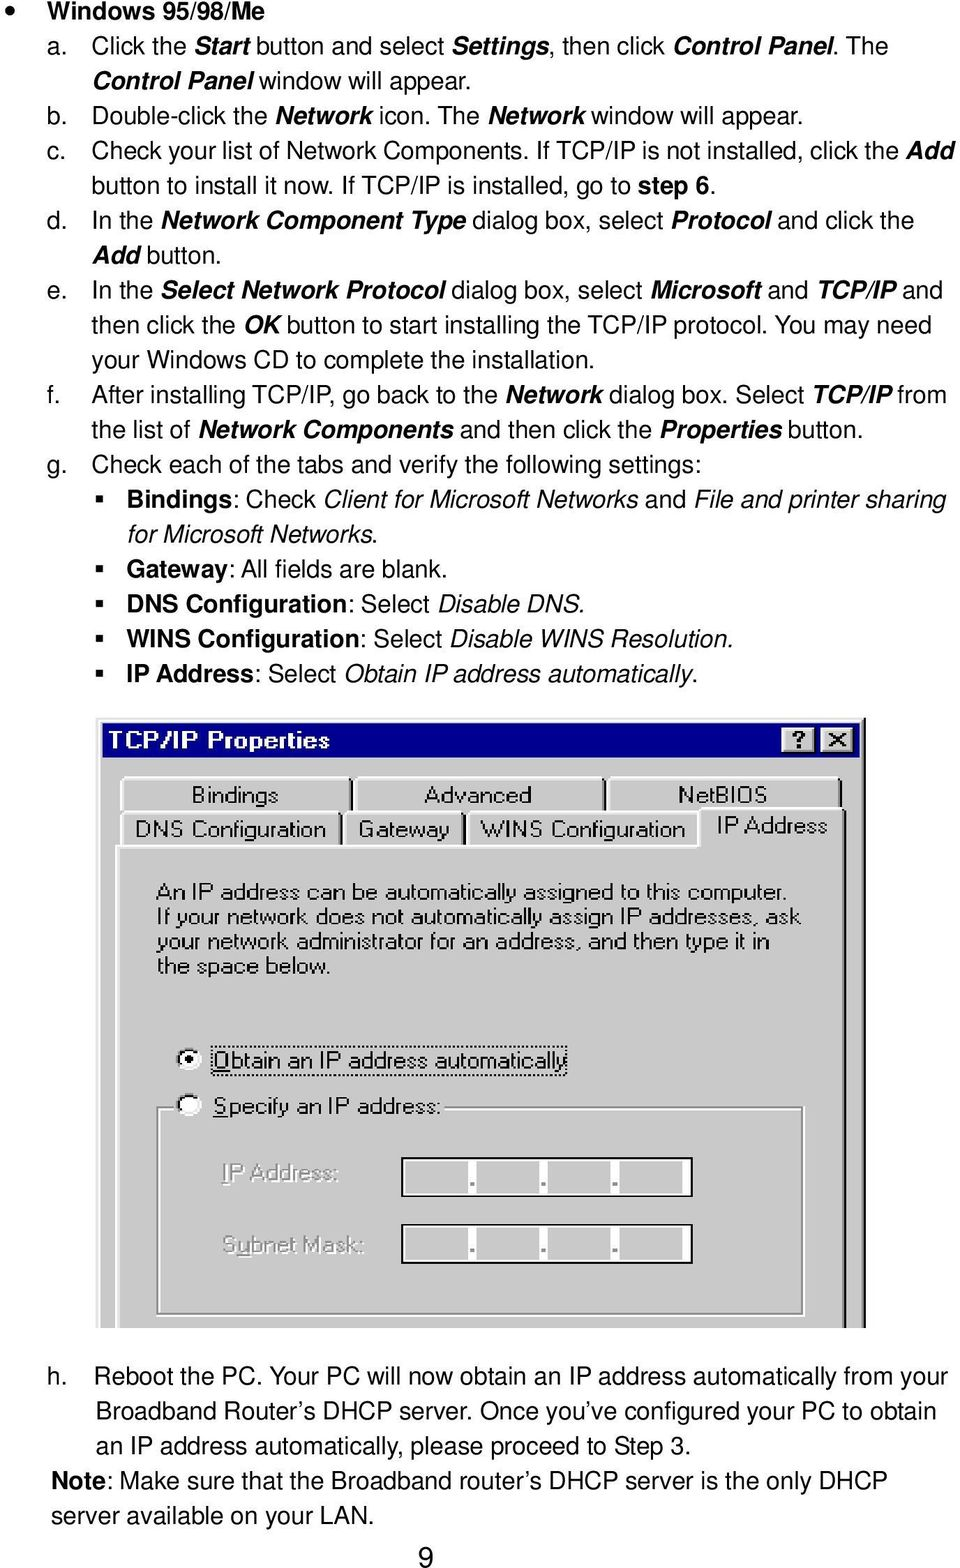 In the Select Network Protocol dialog box, select Microsoft and TCP/IP and then click the OK button to start installing the TCP/IP protocol. You may need your Windows CD to complete the installation.